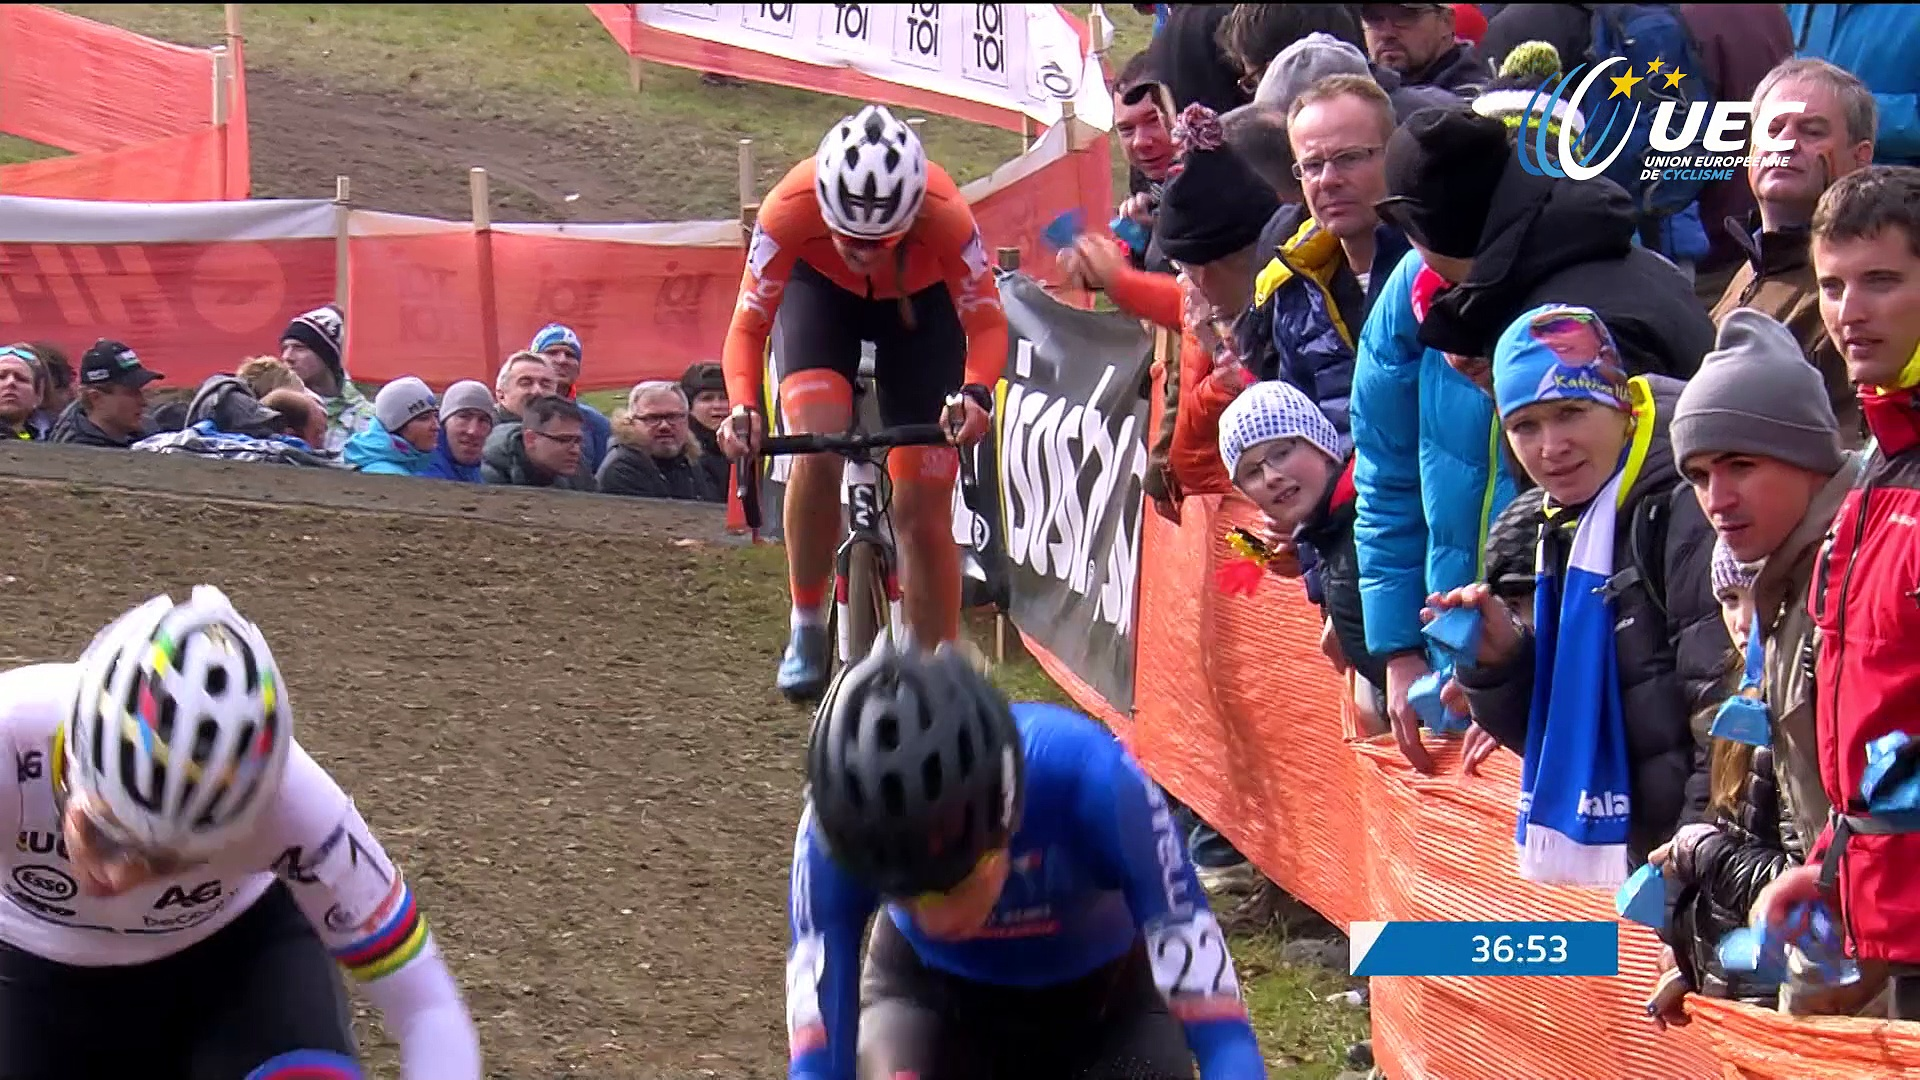 2017 UEC Cyclo-cross European Championships, Tabor (Cze) – Highlights Women Elite